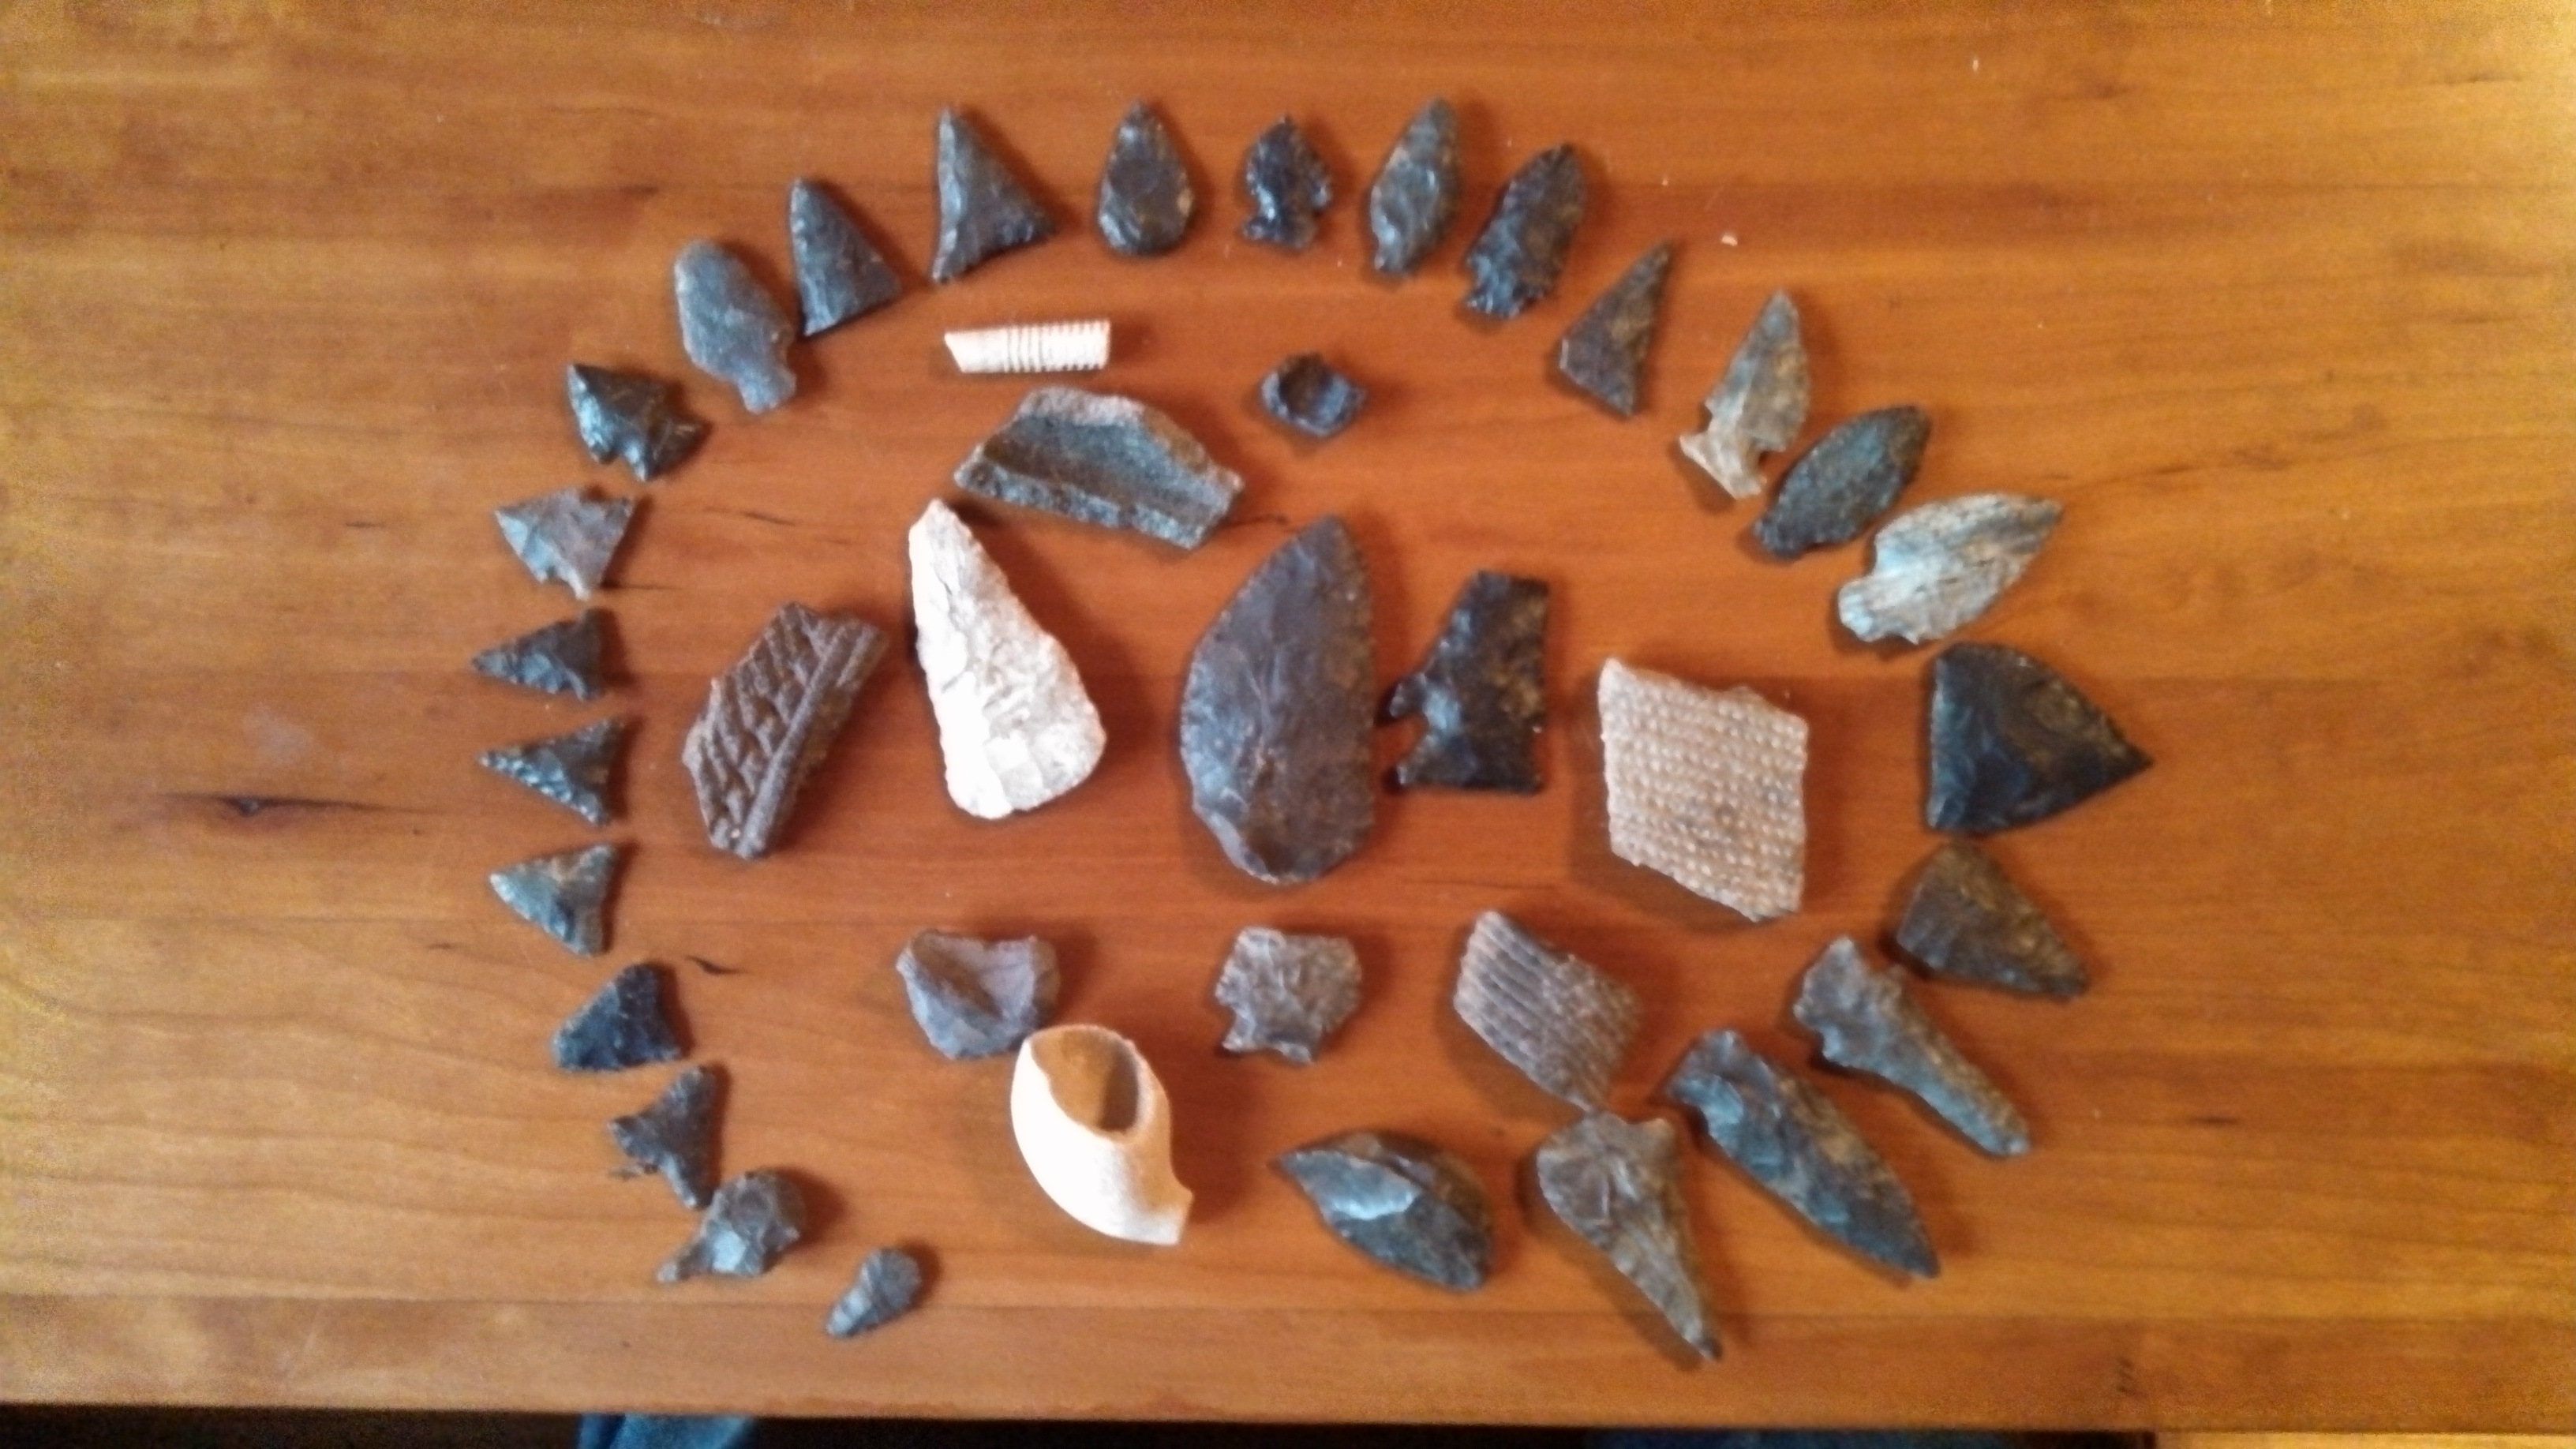 Some arrow heads